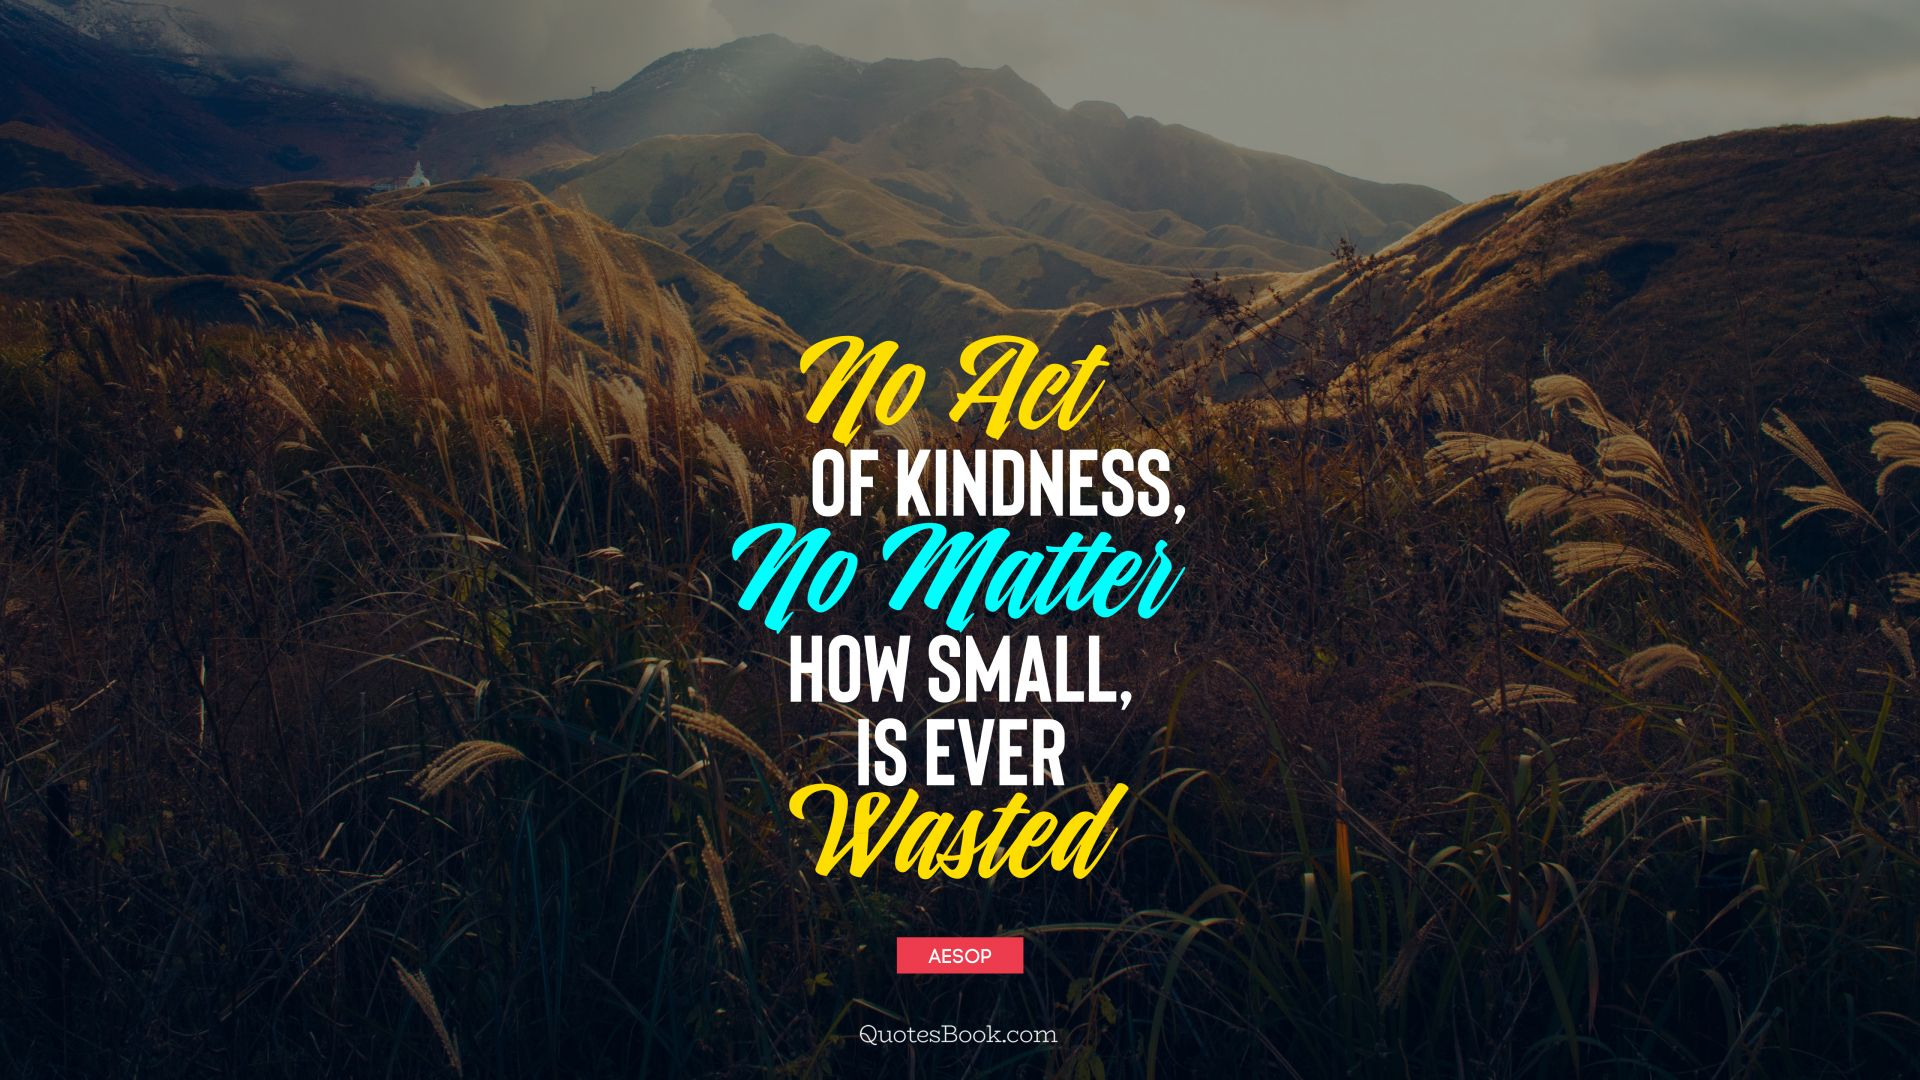 No act of kindness, no matter how small, is ever wasted ...